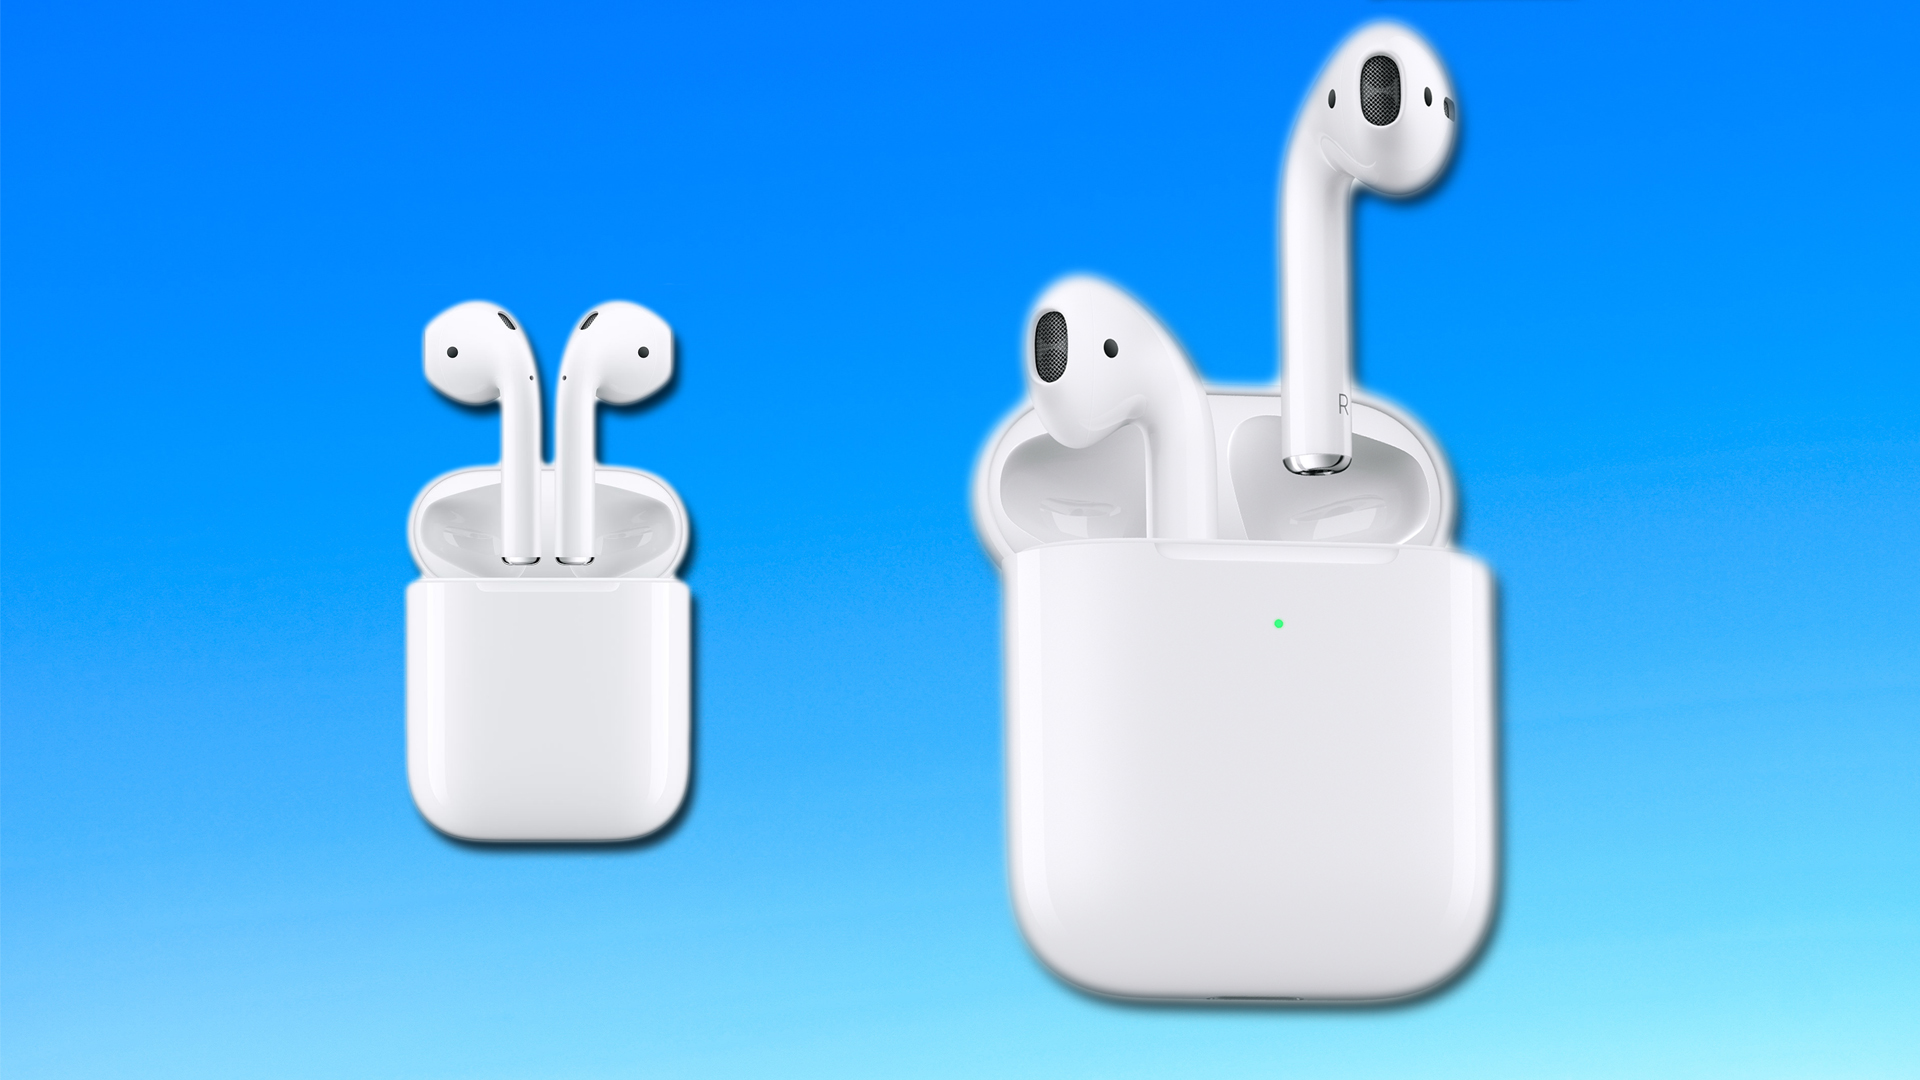 Best Apple AirPods Deals May 2019